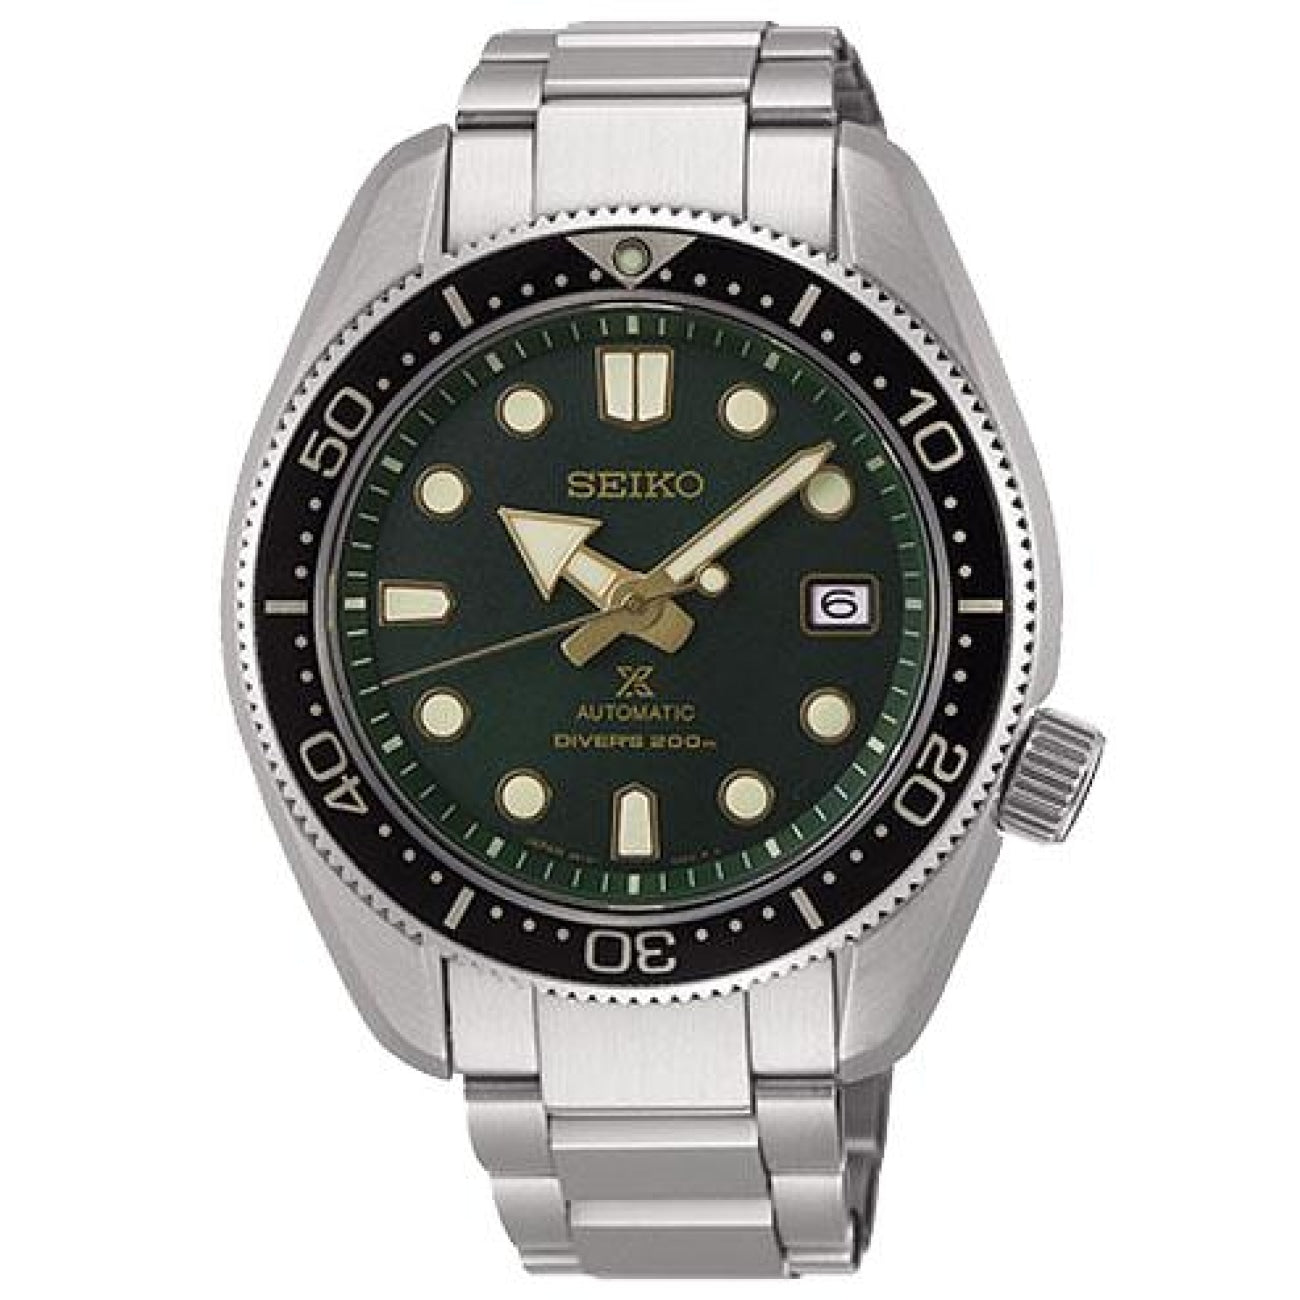 Seiko Watches - Prospex LX Automatic Dive Watch SPB105 | Manfredi Jewels